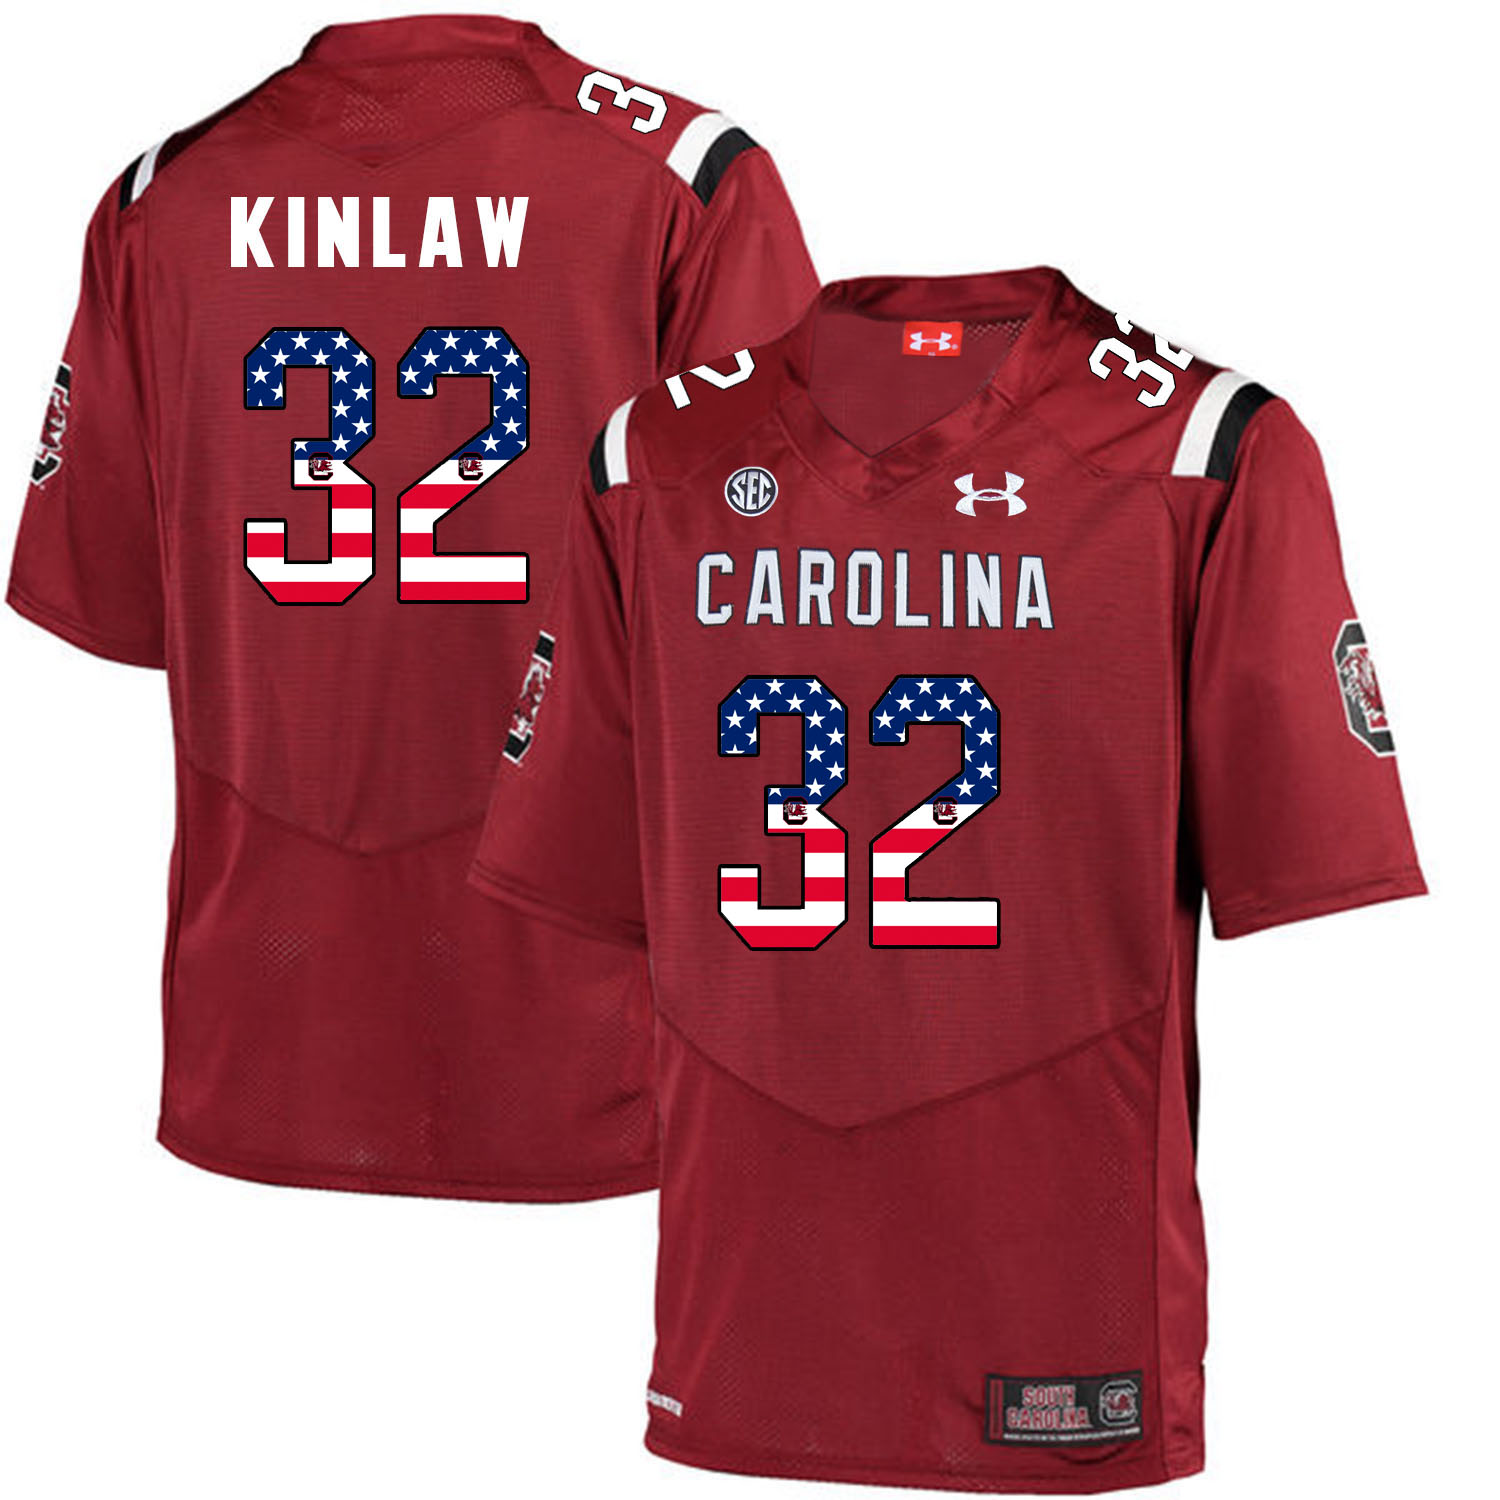 South Carolina Gamecocks 32 Caleb Kinlaw Red USA Flag College Football Jersey